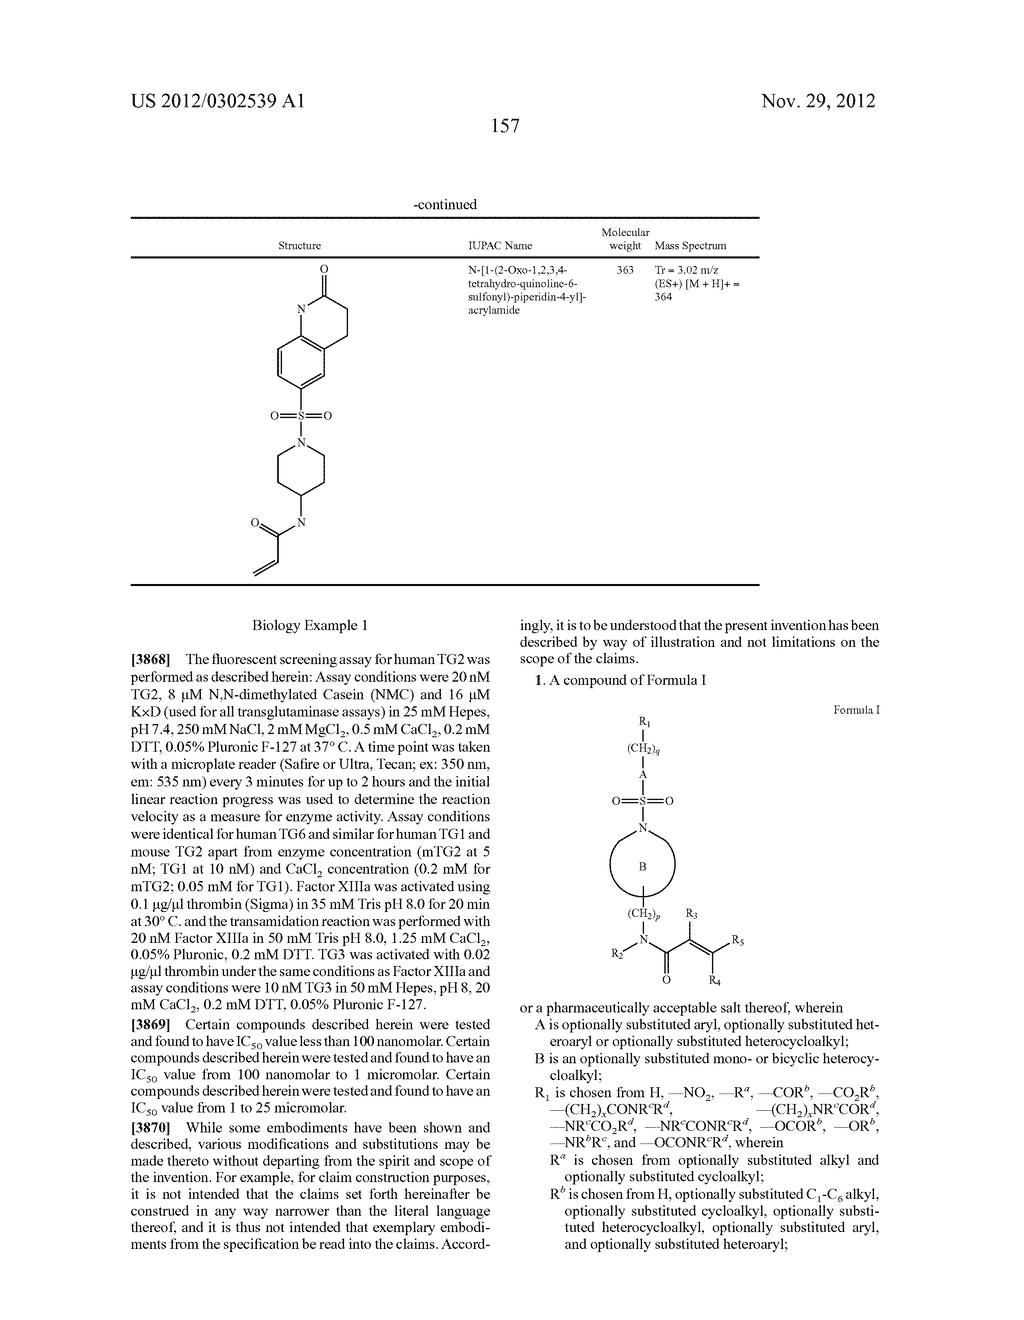 TRANSGLUTAMINASE TG2 INHIBITORS, PHARMACEUTICAL COMPOSITIONS, AND METHODS     OF USE THEREOF - diagram, schematic, and image 158